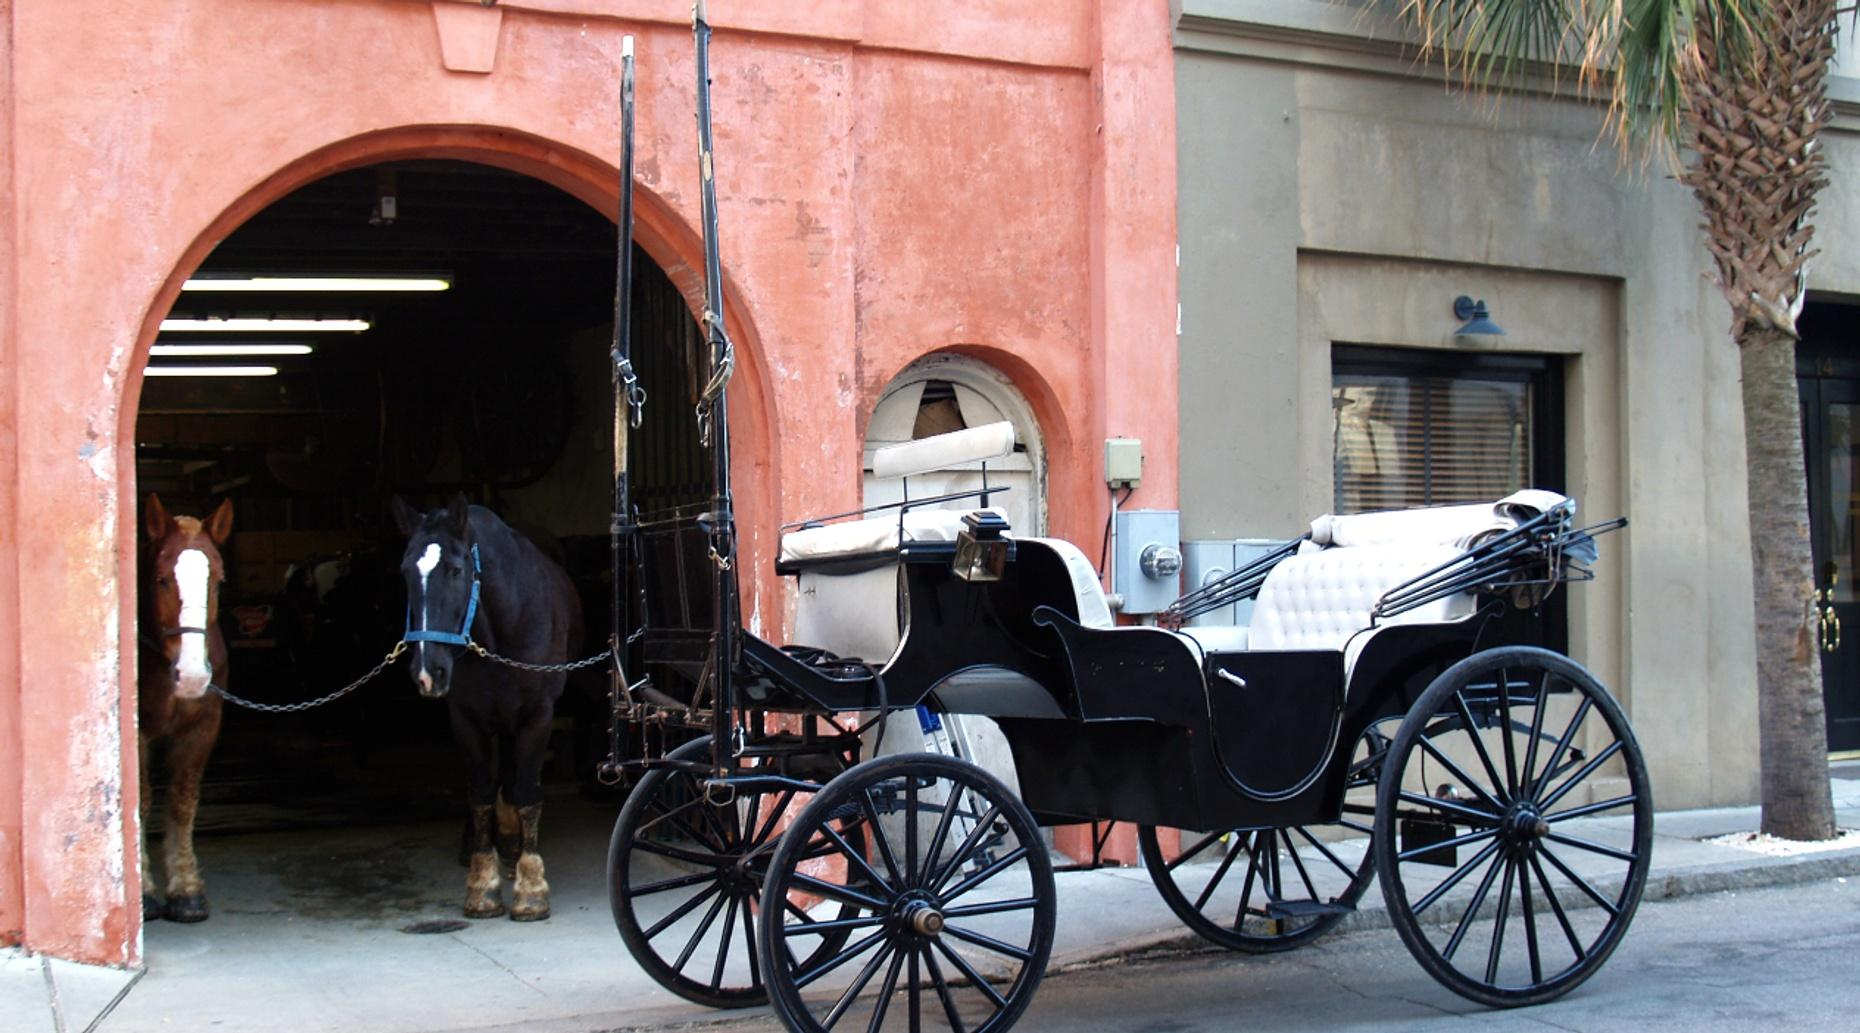 30 Minute Horse and Carriage Ride